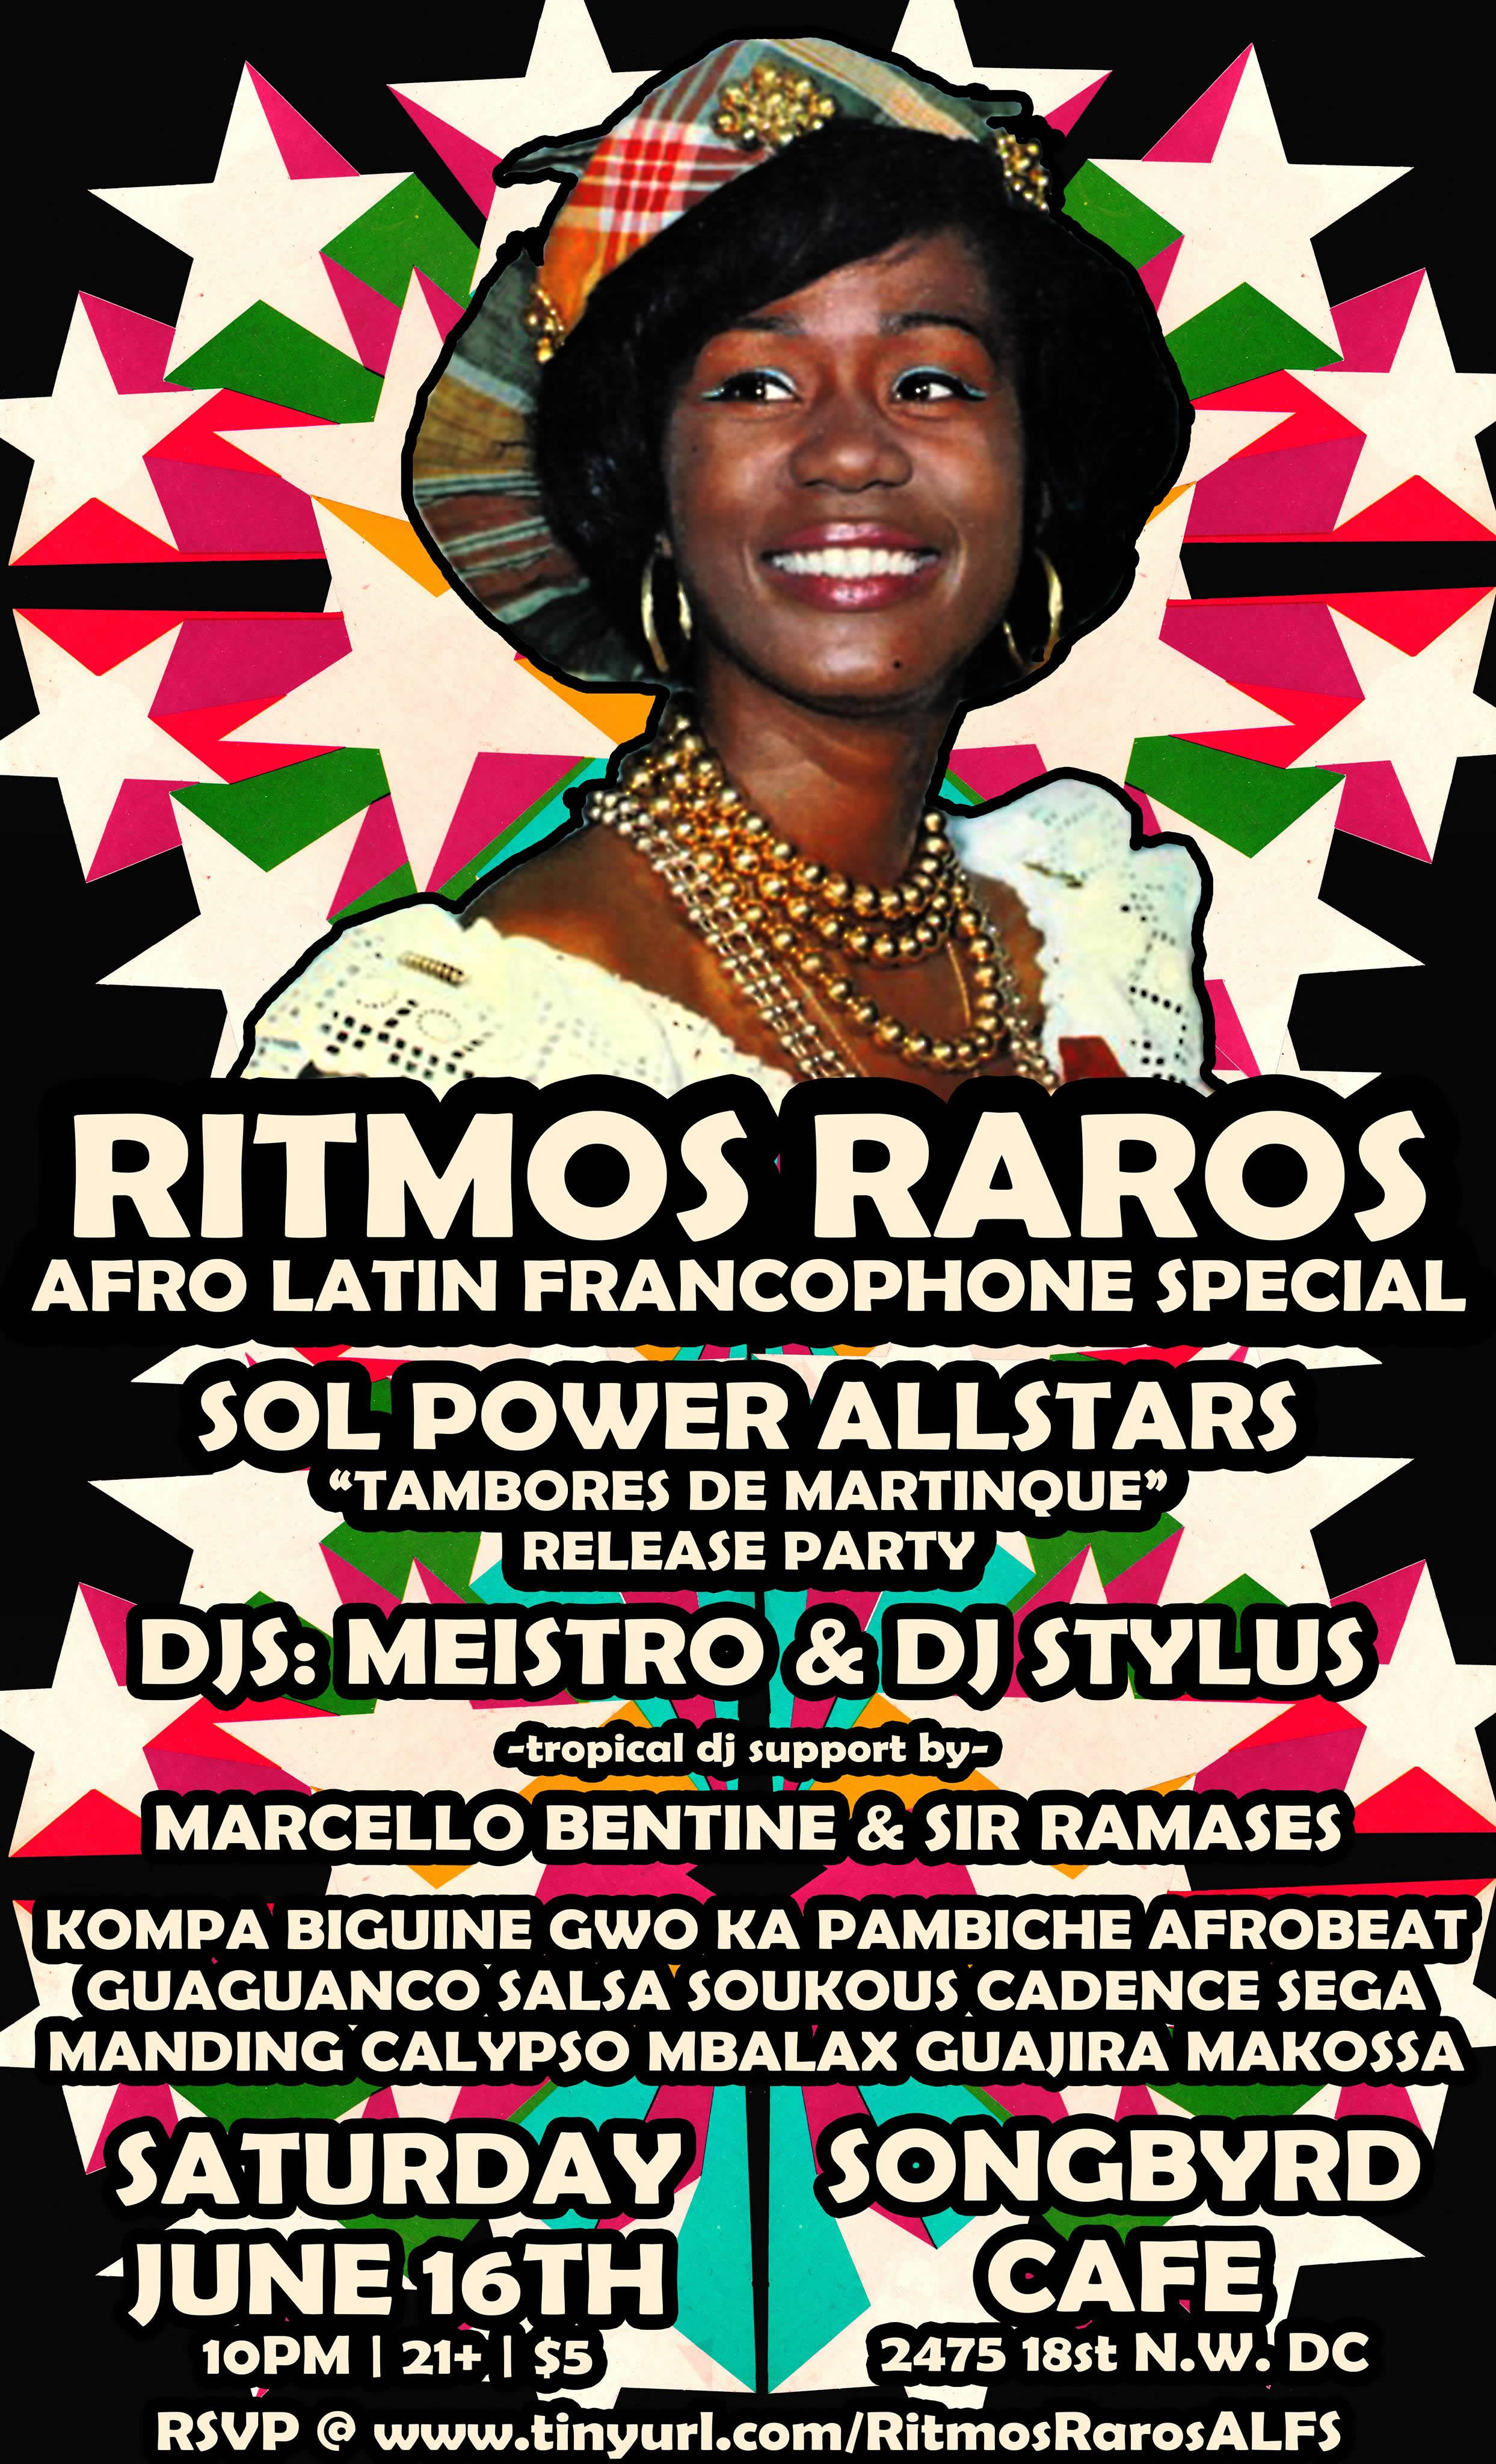 Ritmos Raros: Afro Latin Francophone Special: Sol Power EP Party